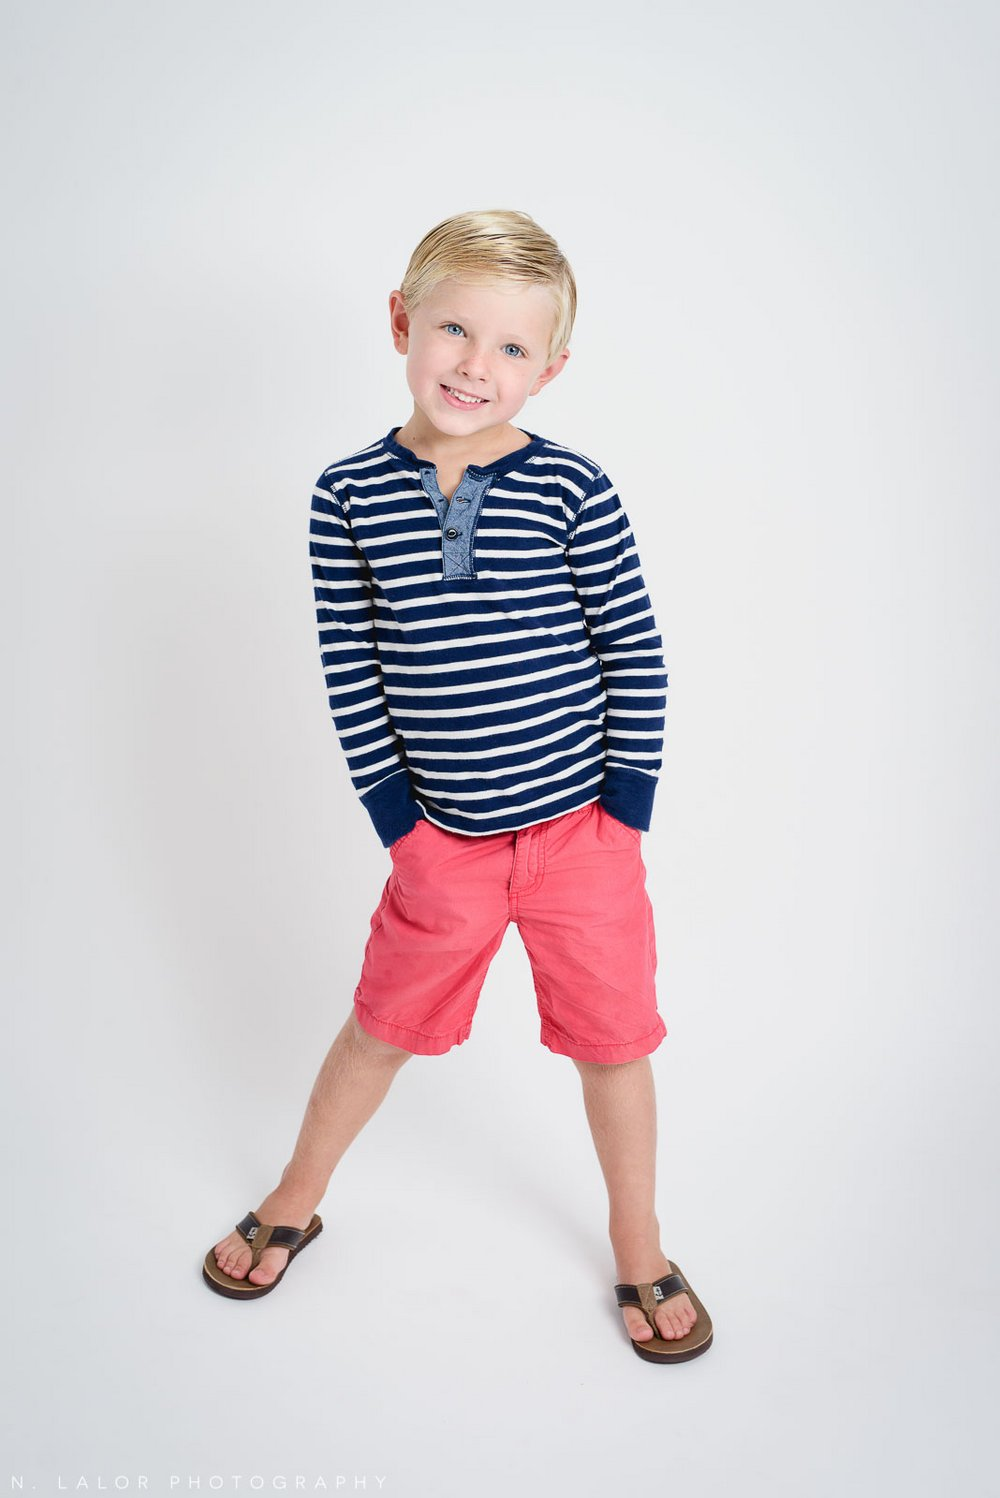 Striped shirt boy. Studio photoshoot with N. Lalor Photography in Greenwich, Connecticut.